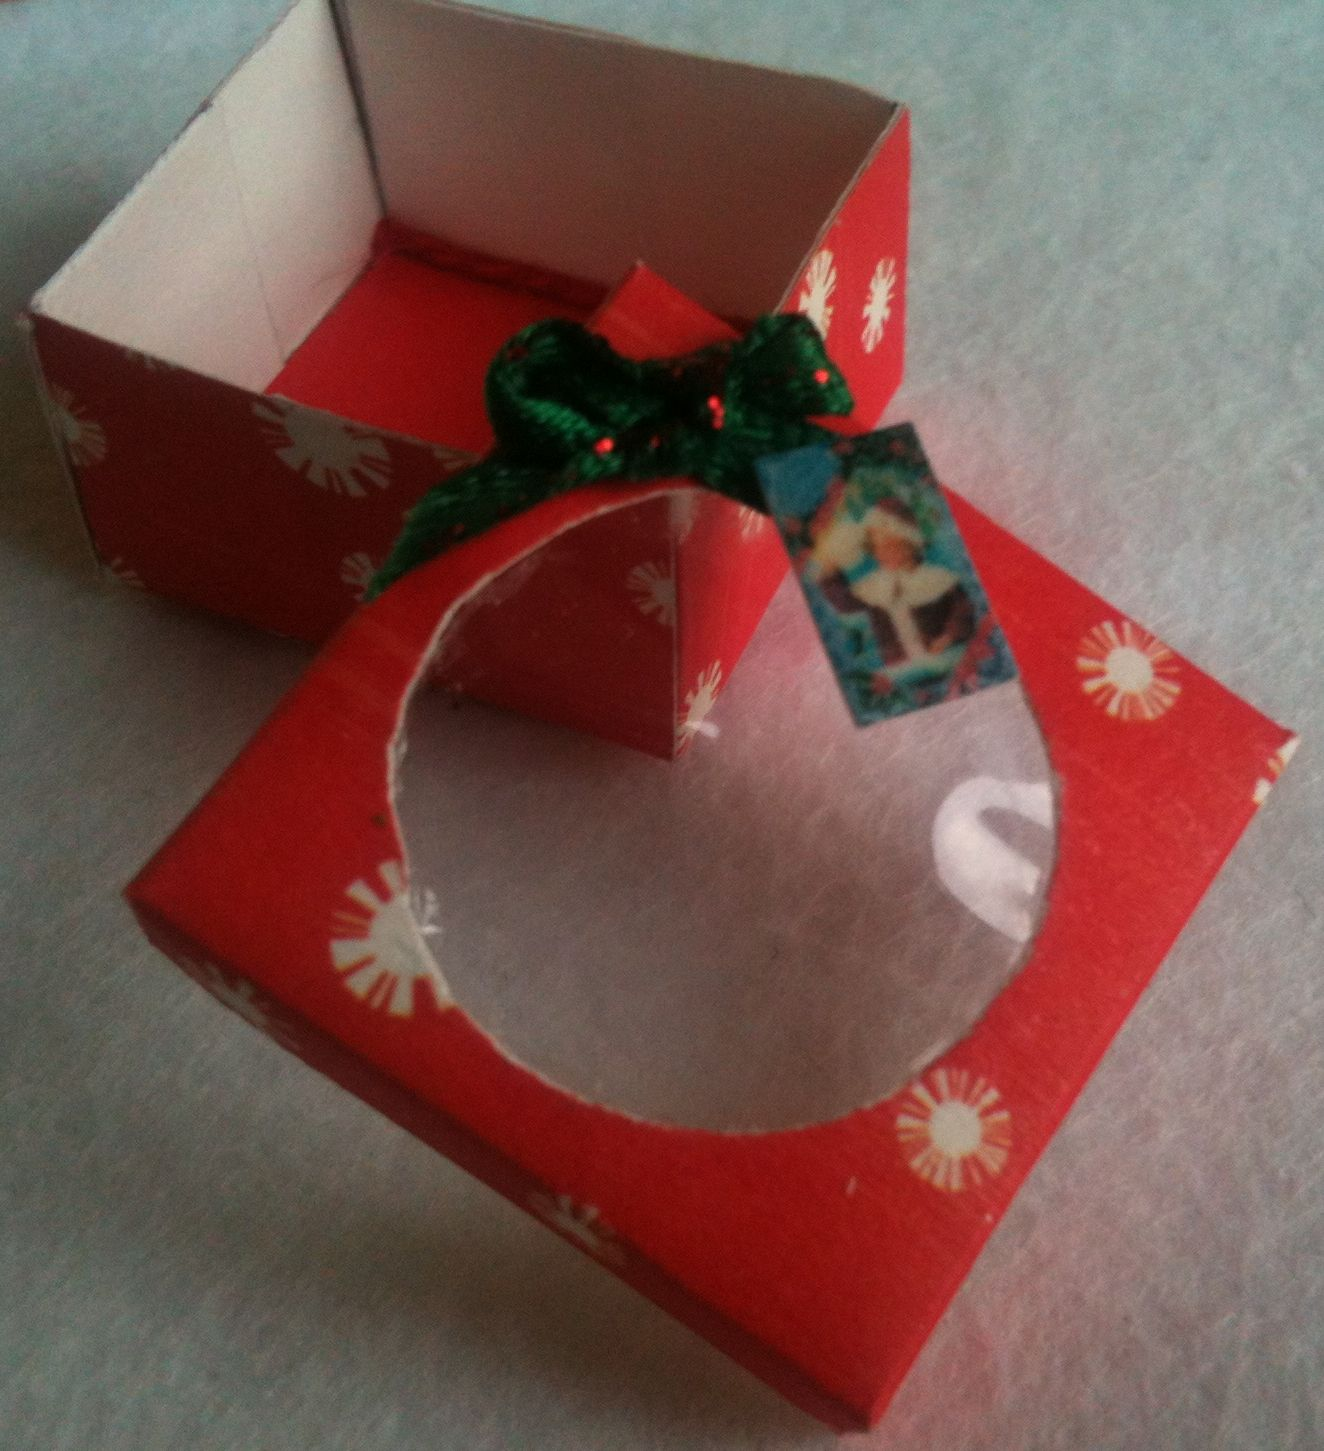 Small box for Christmas cake, cookies or candies.